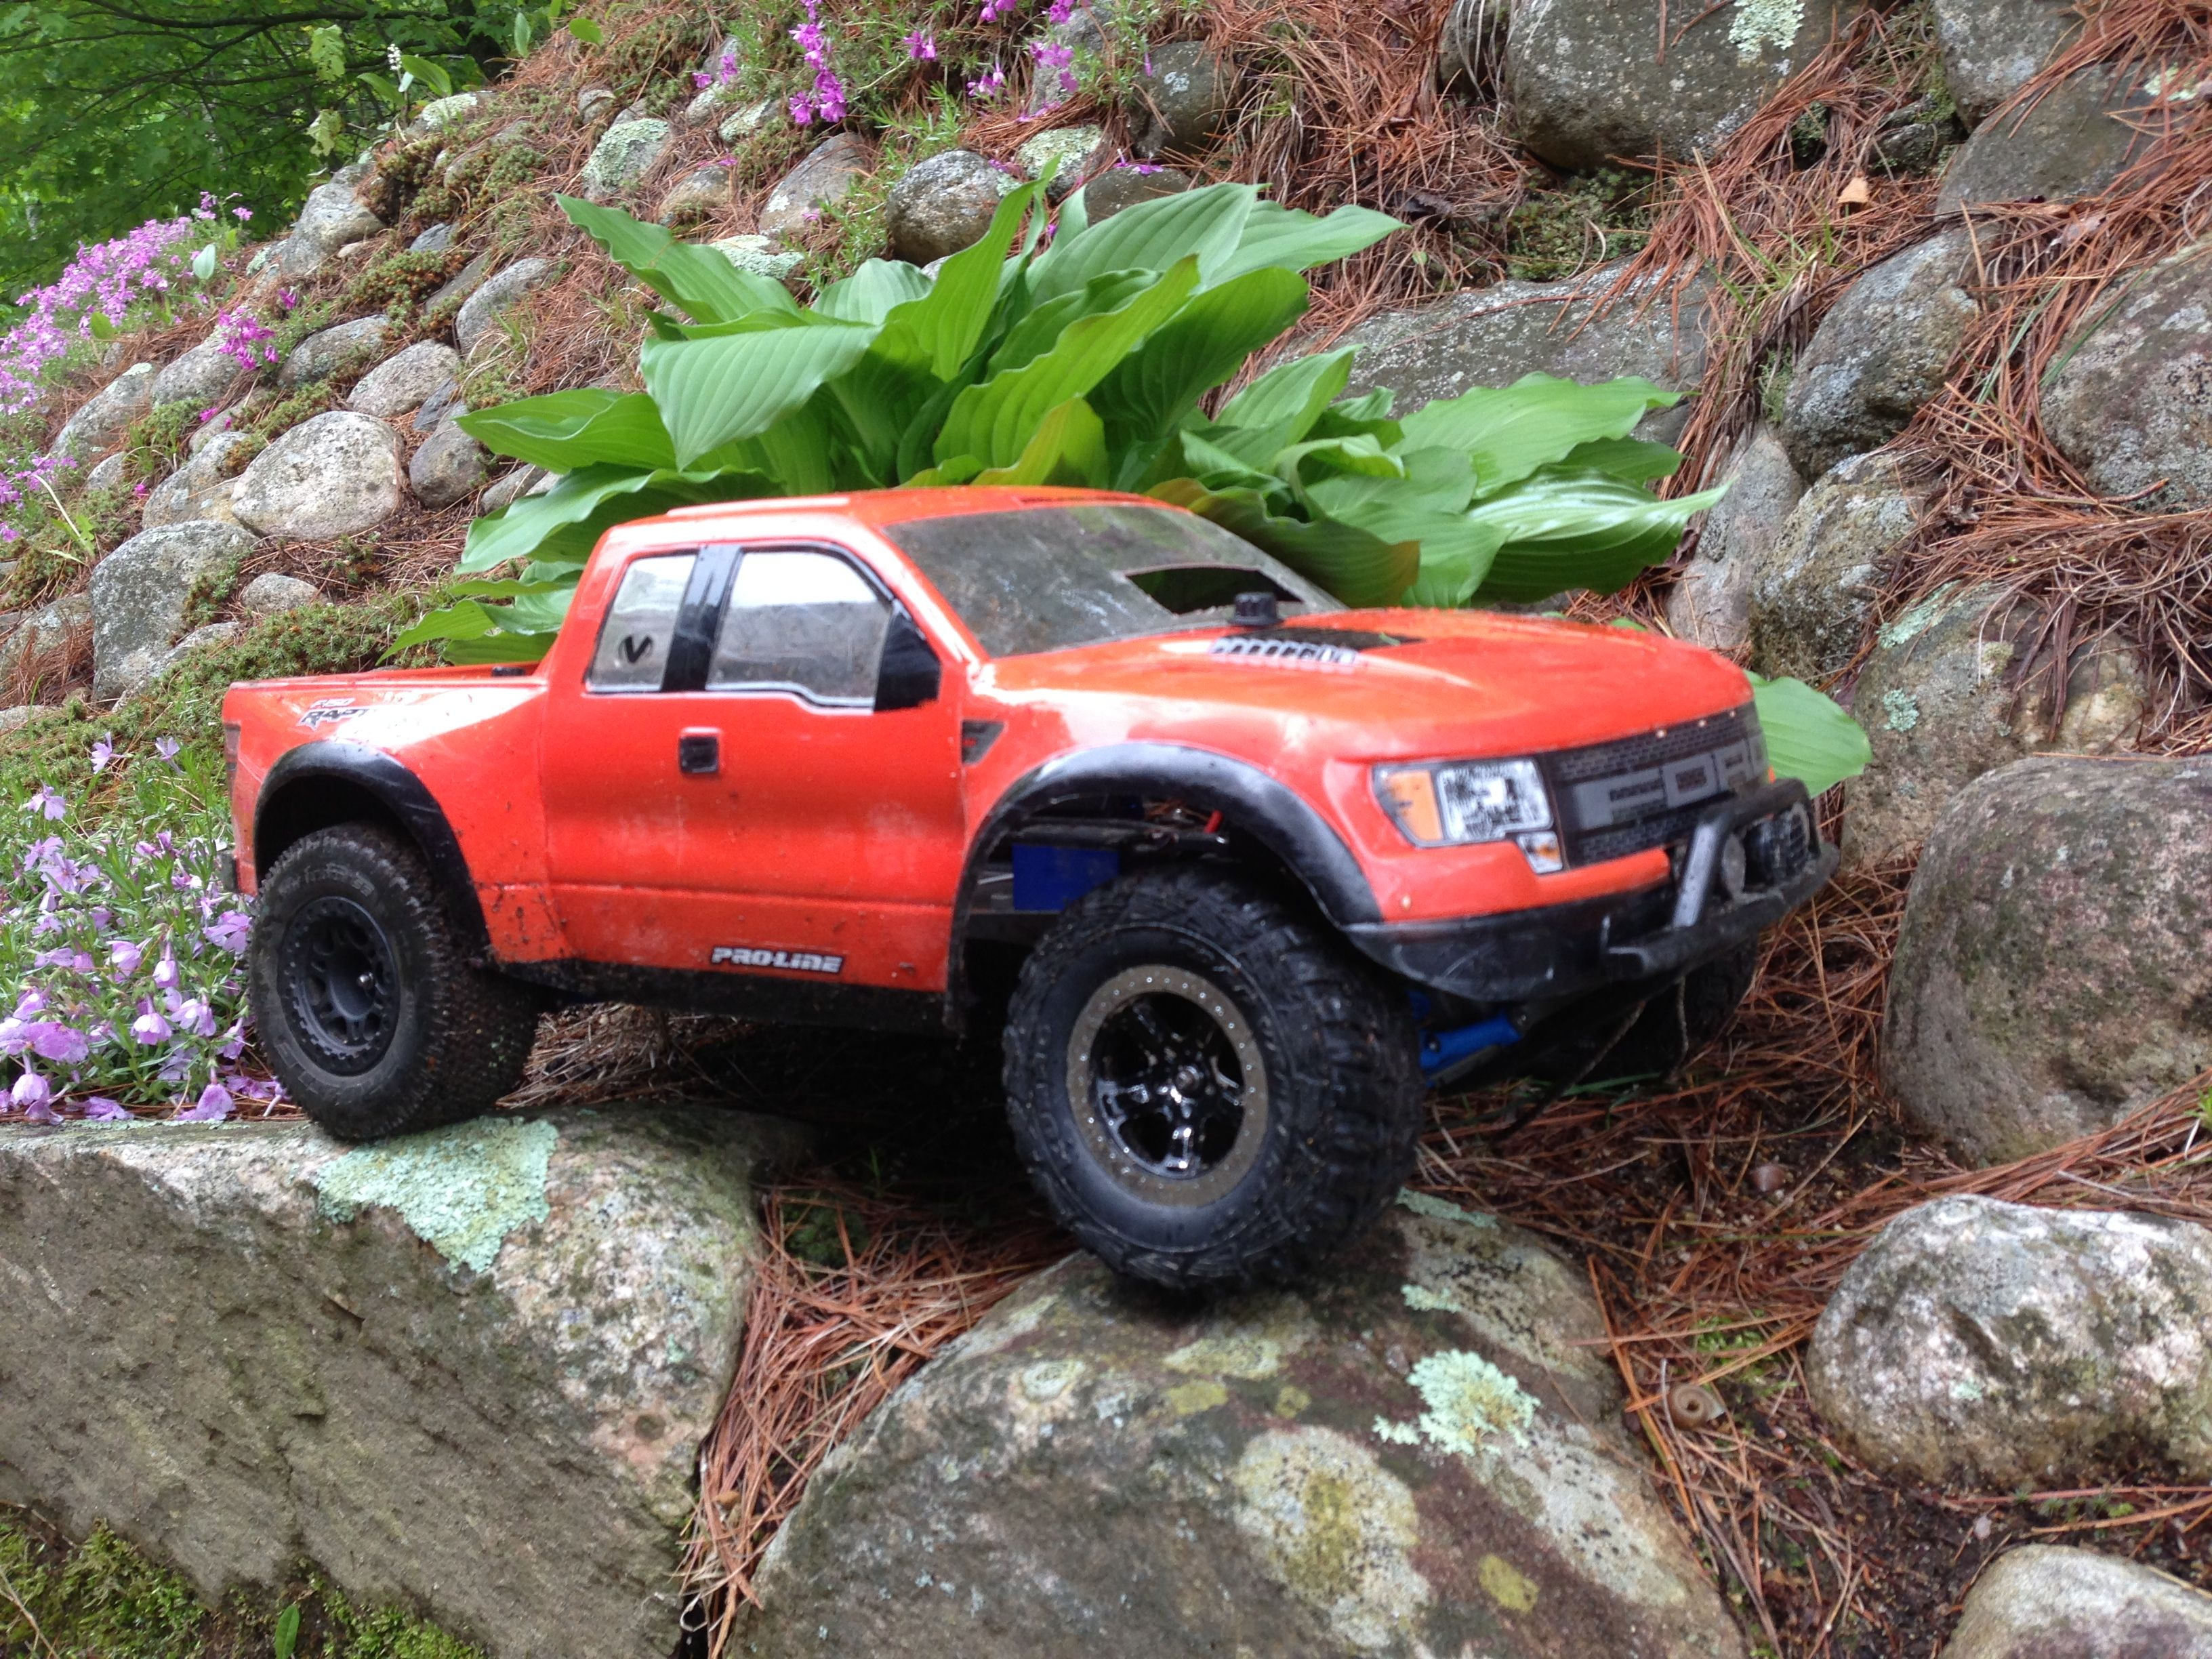 2 door scx10 jeep. | Show your RC Rigs! | Pinterest | Jeeps, Offroad ...